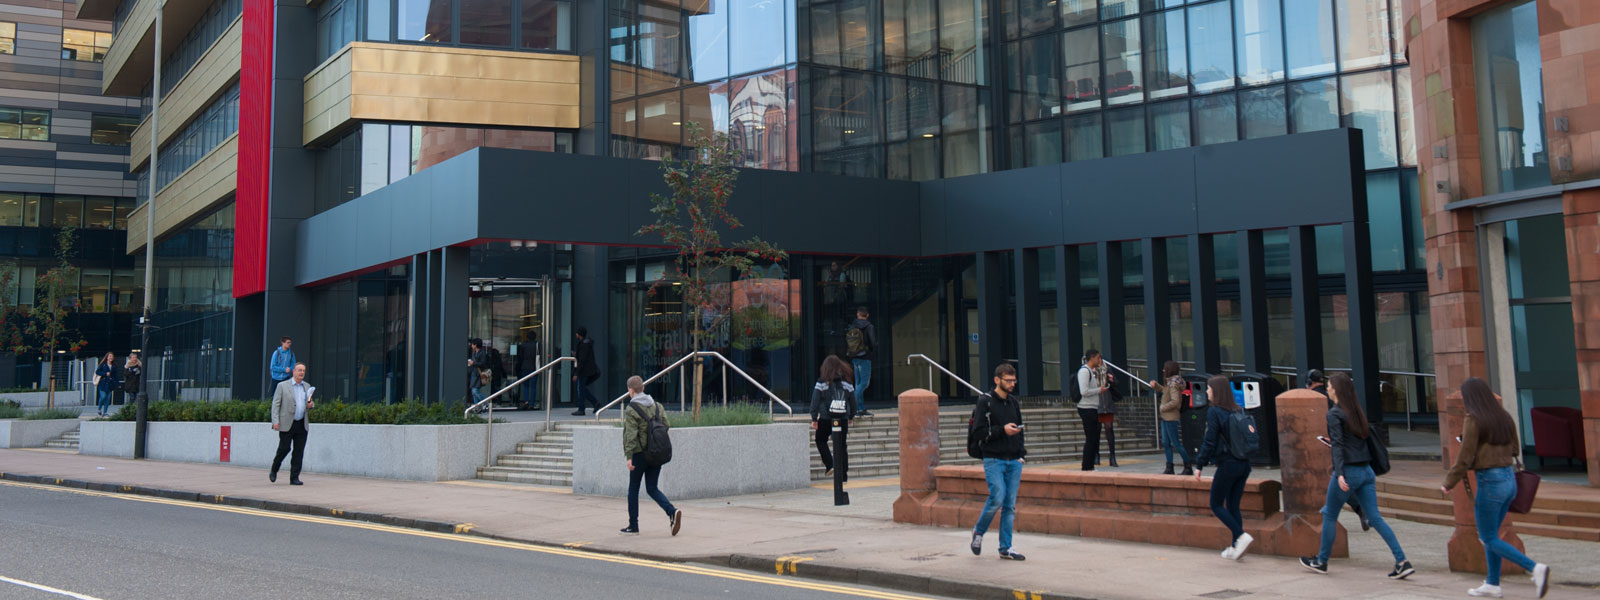 strathclyde business school from cathedral st with staff and students walking in front